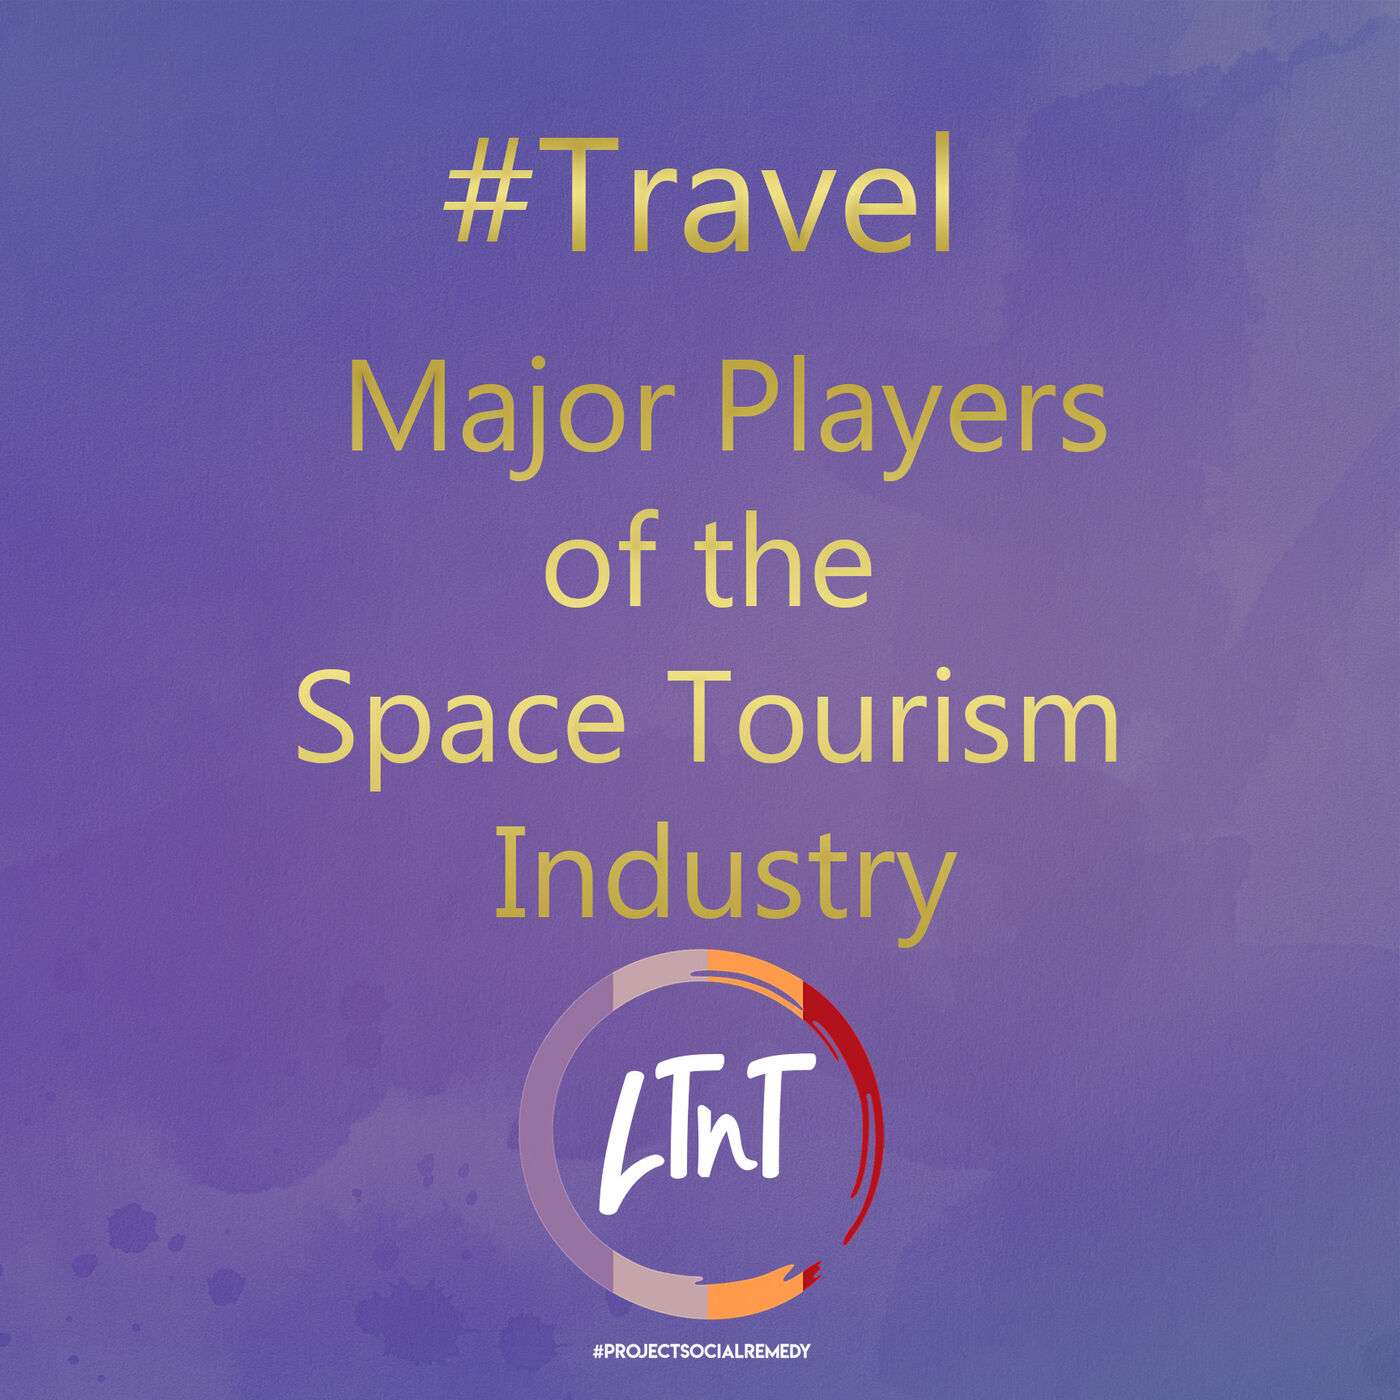 Major Players of the Space Tourism Industry